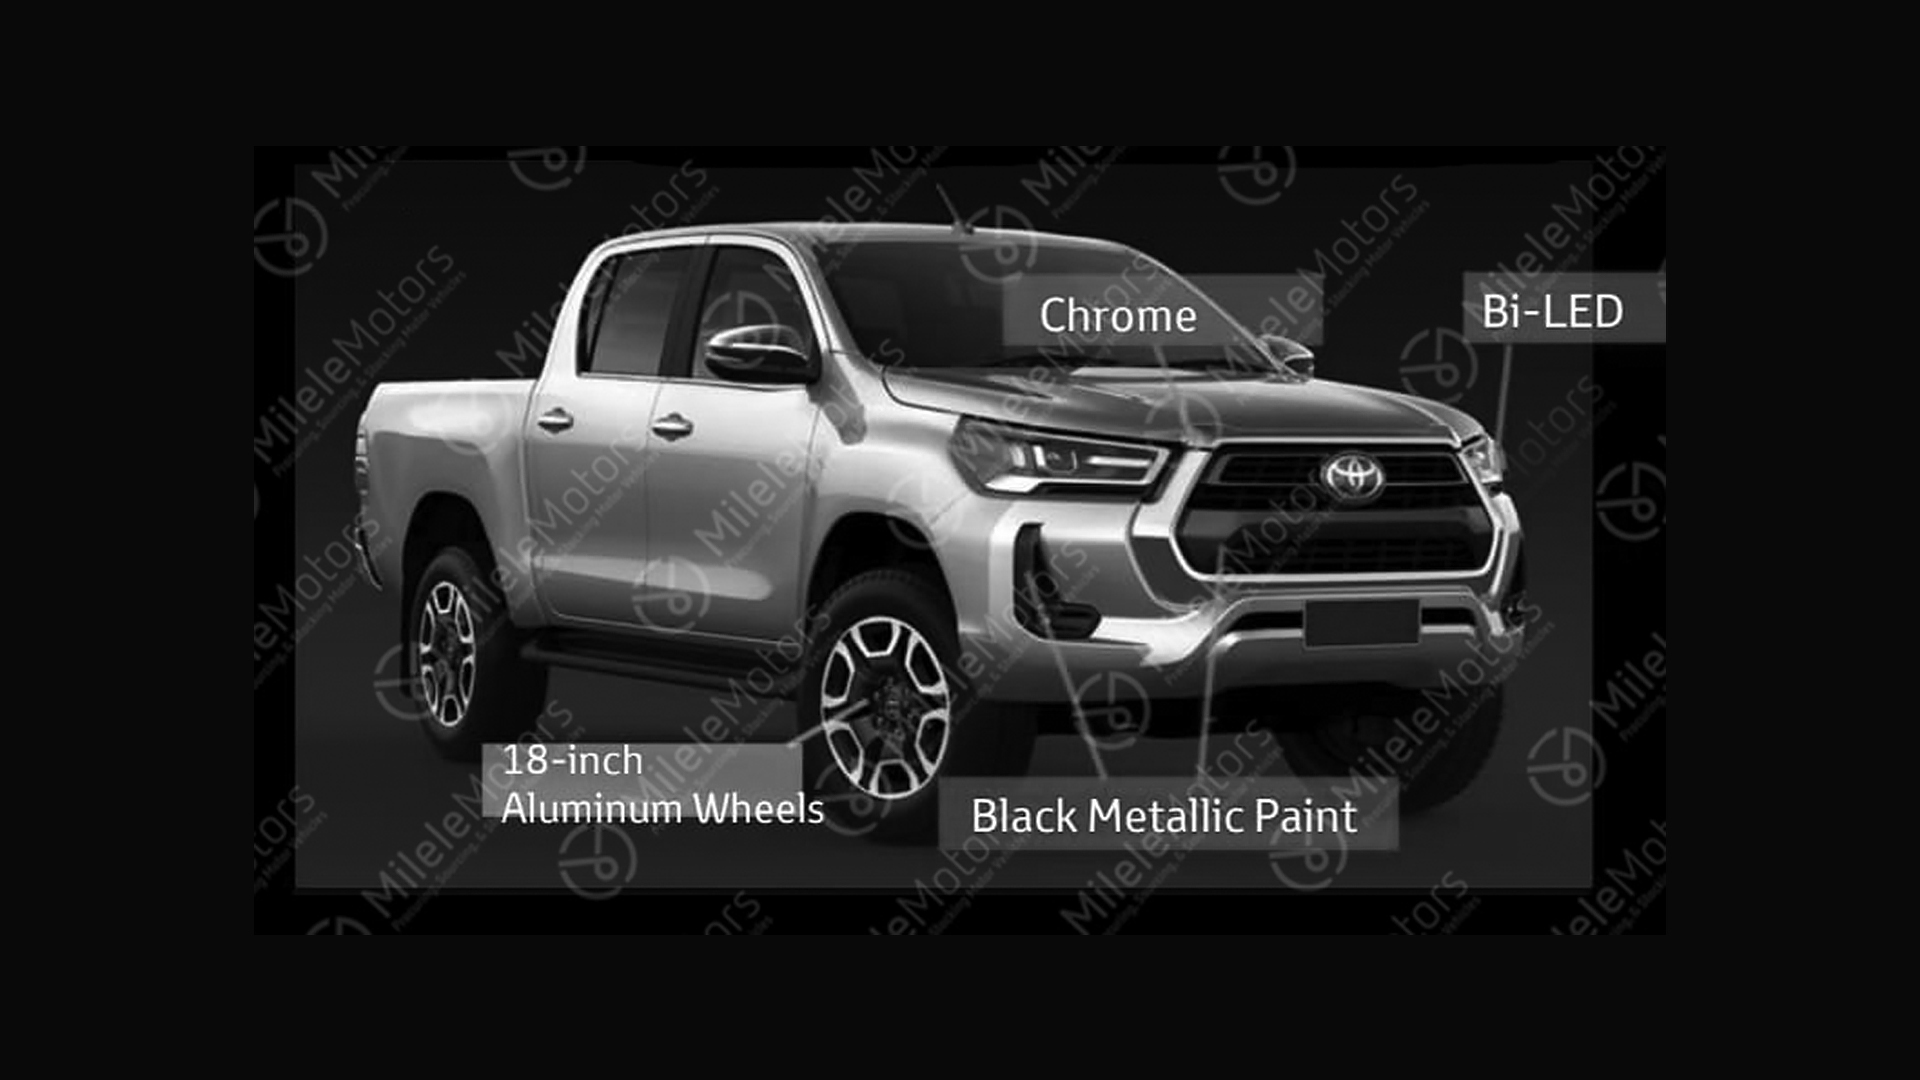 New 2020 Toyota Hilux facelift, how does it compare with the older model?